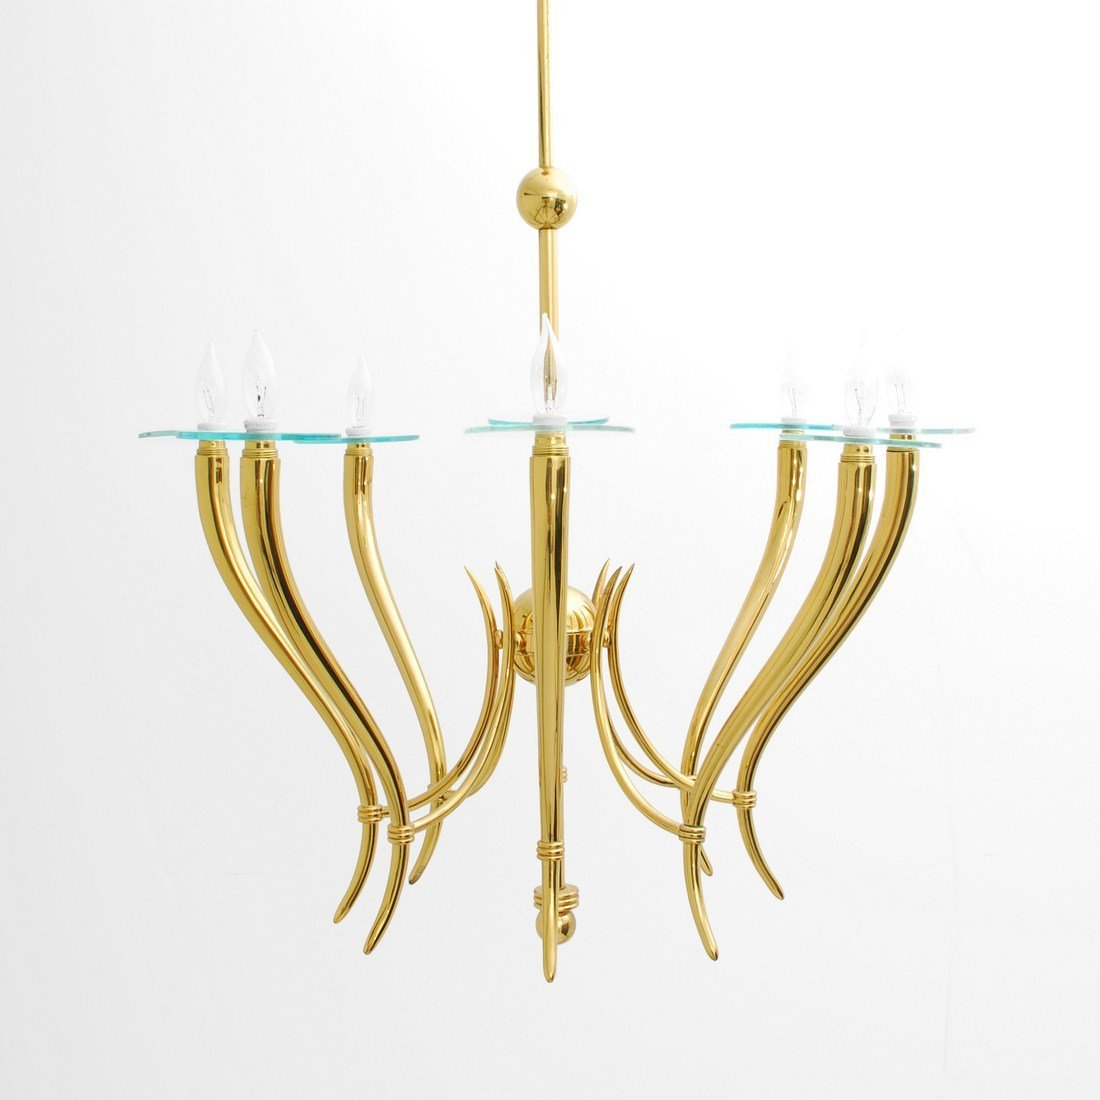 Large Brass & Glass Chandelier, Gio Ponti